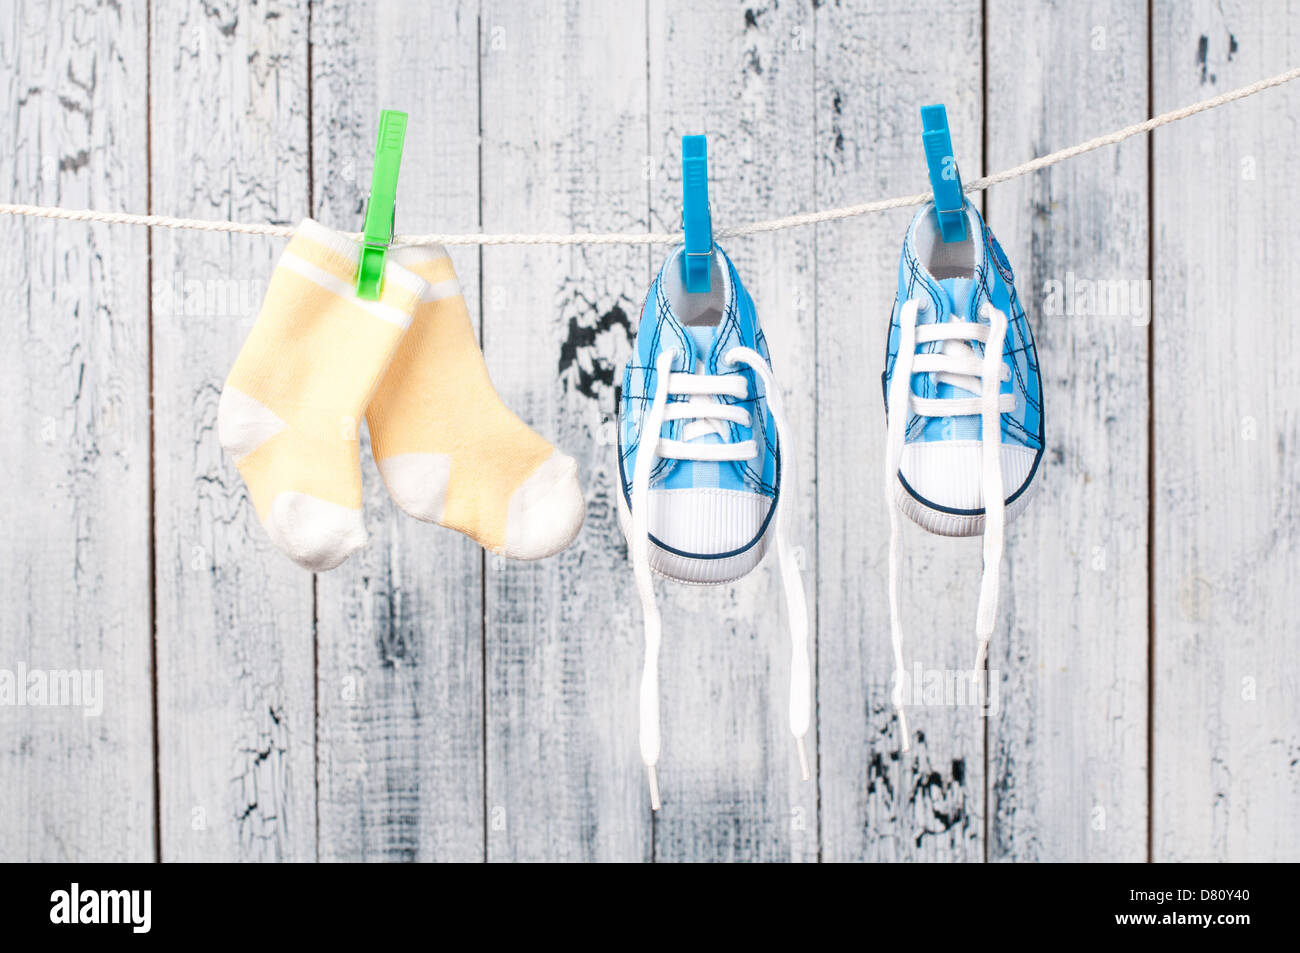 Baby clothes hanging on the clothesline. - Stock Image